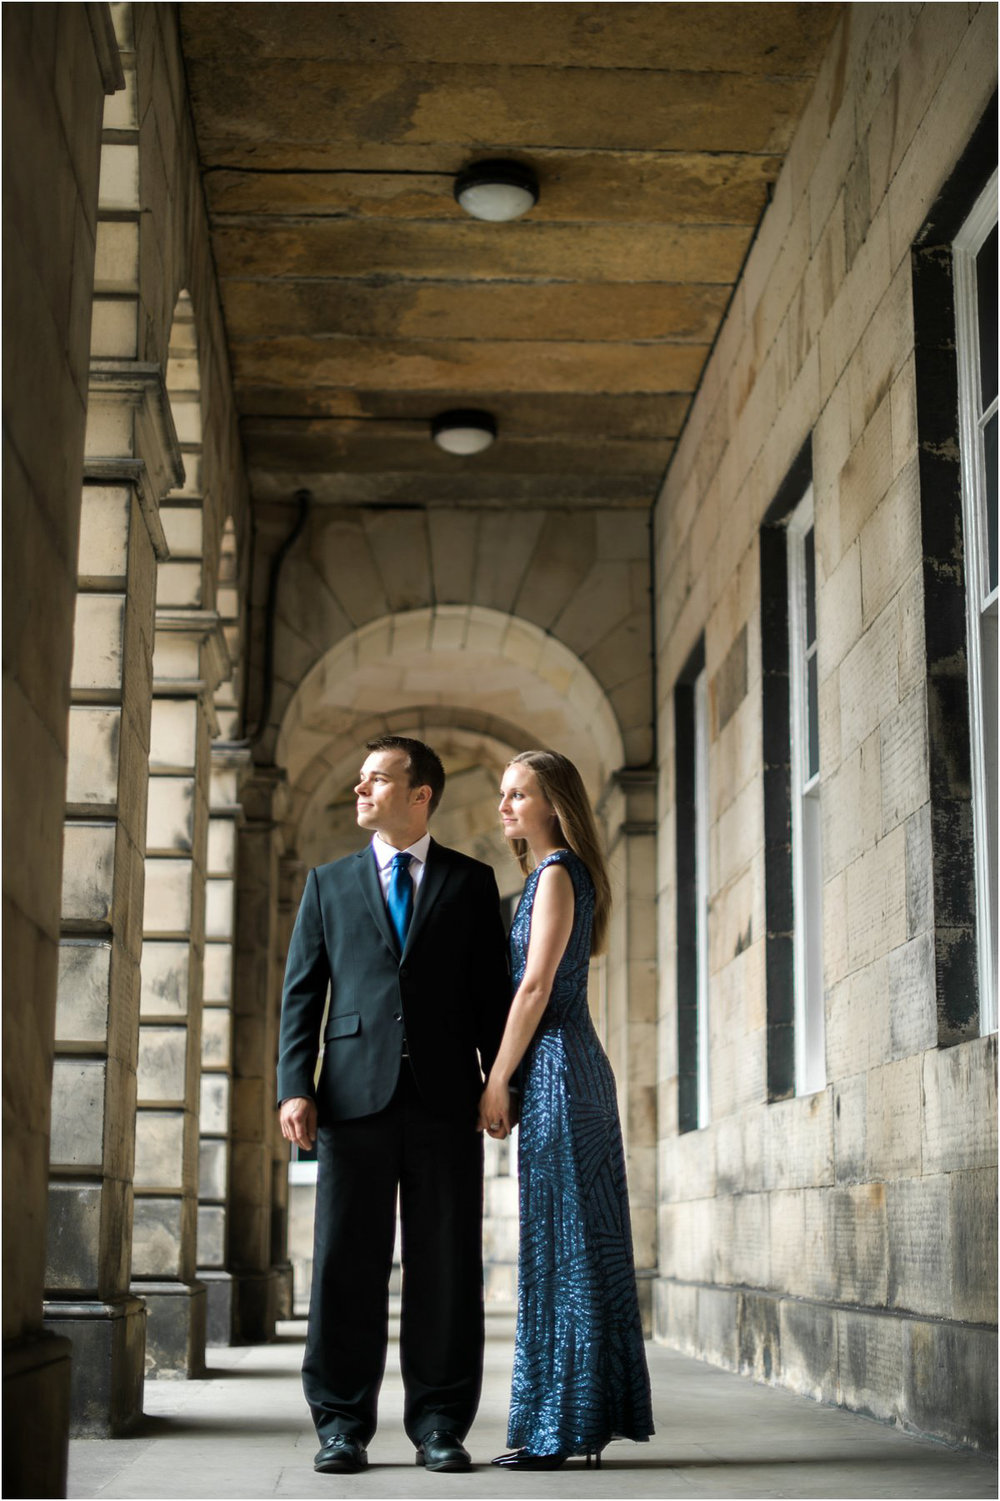 Crofts&KowalczykPhotography_destination_portraits_Edinburgh